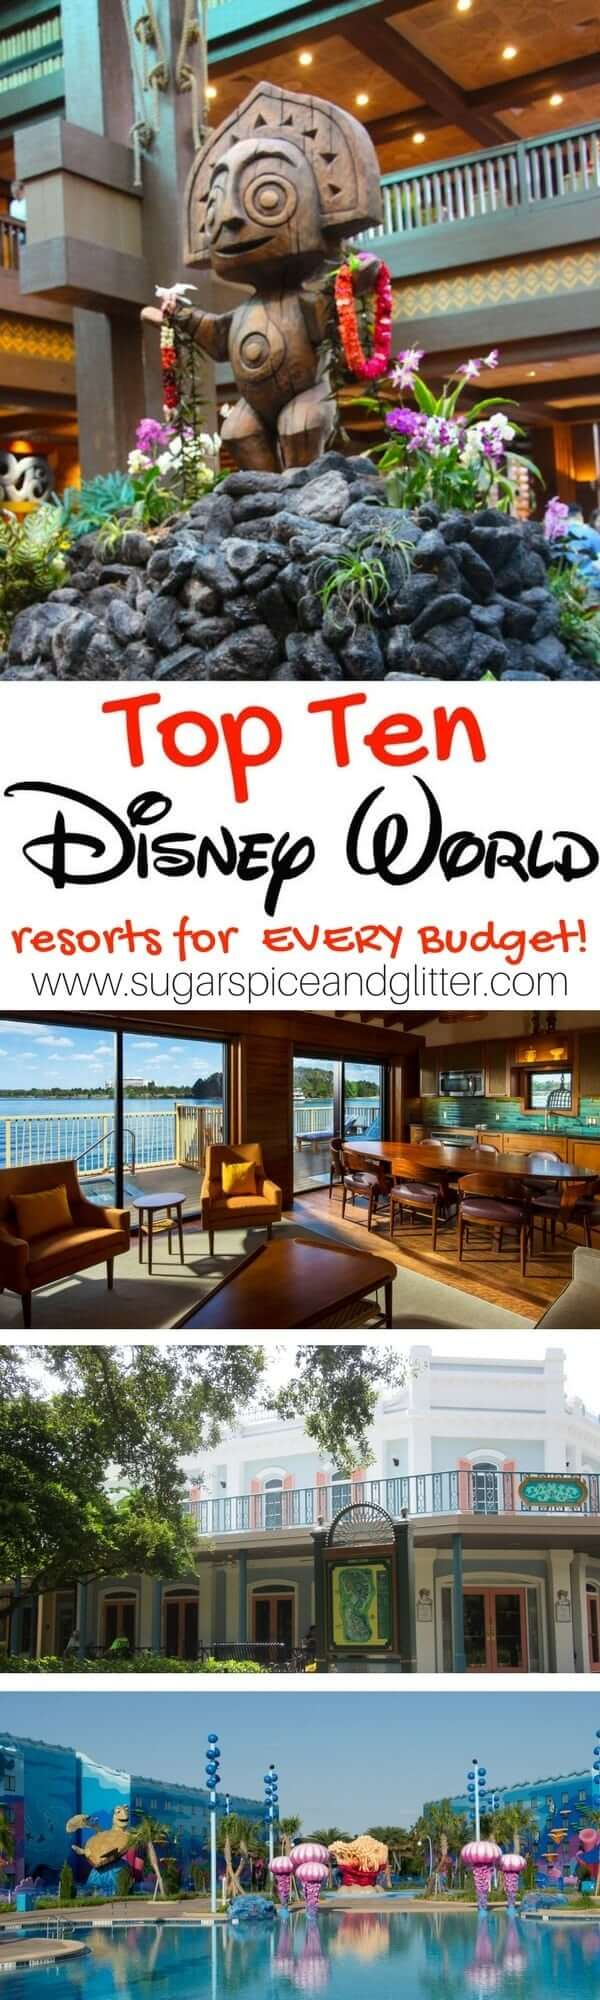 The Top Ten Walt Disney World Resorts for every budget - luxurious deluxe resorts and value-packed Value resorts that guarantee you an amazing Disney family vacation